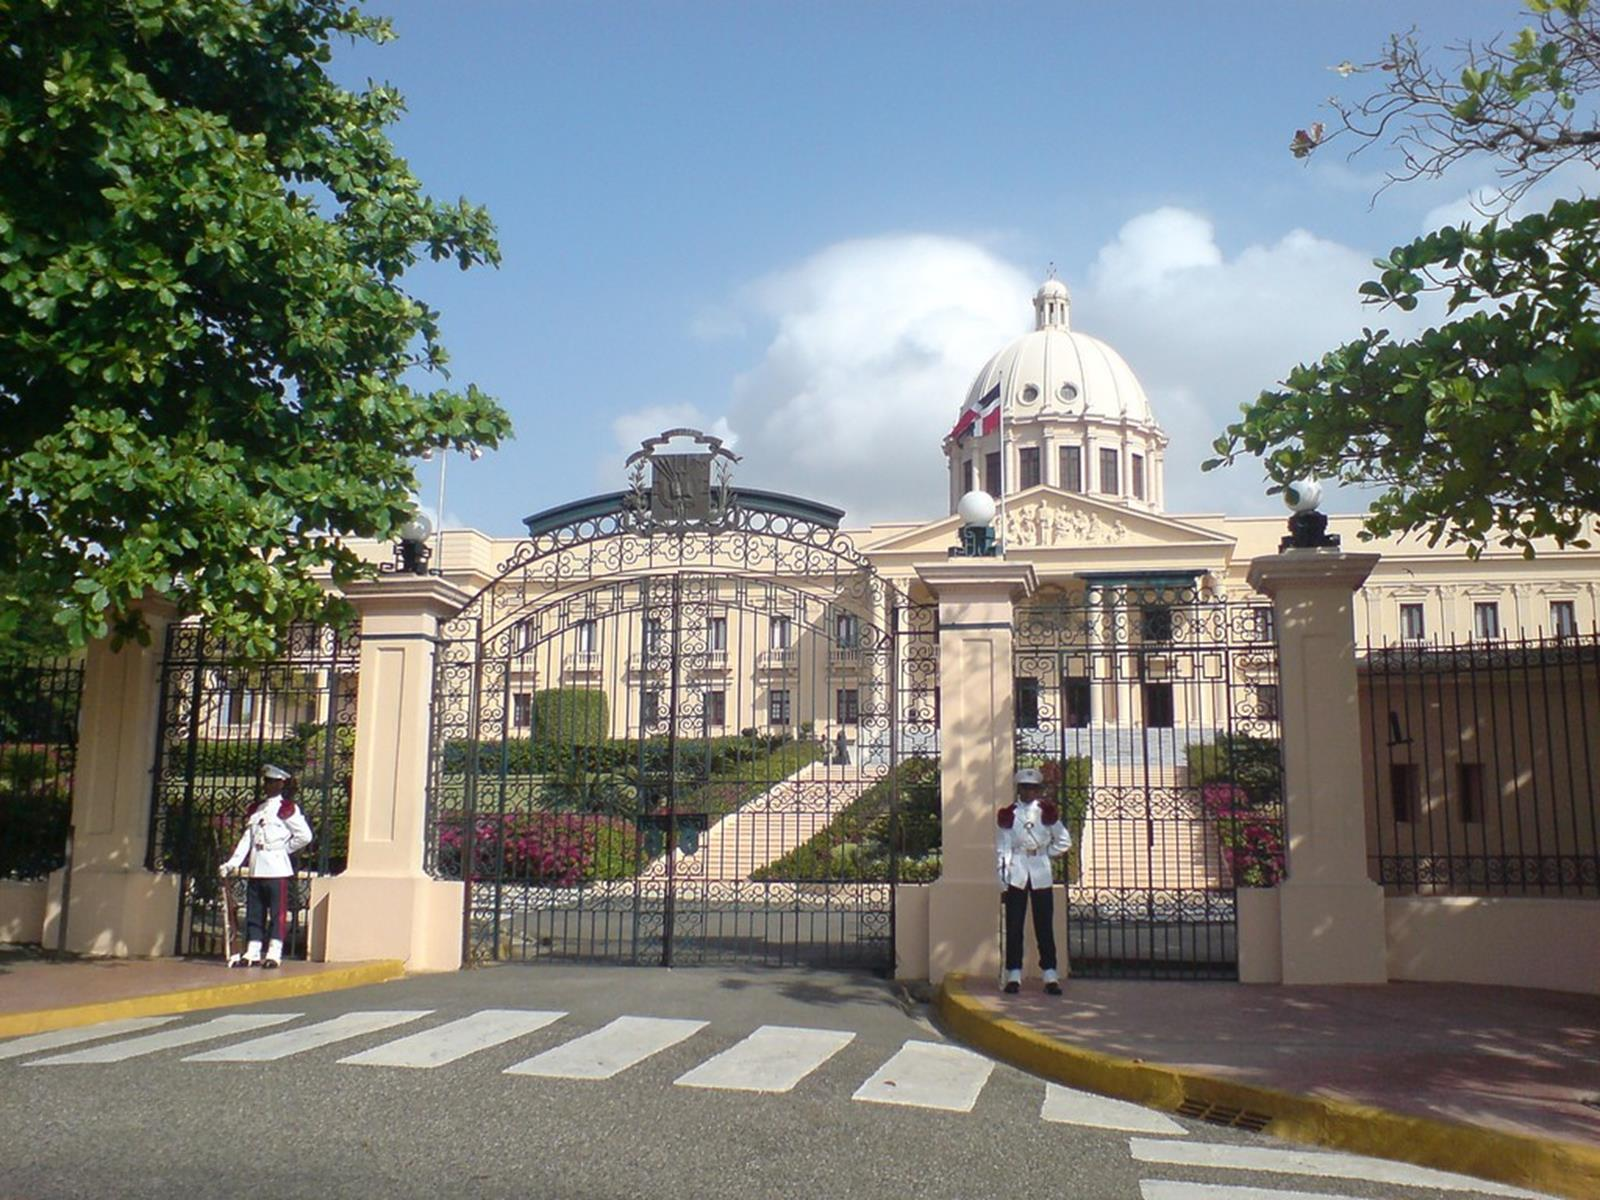 National Palace. The Dominican Republic